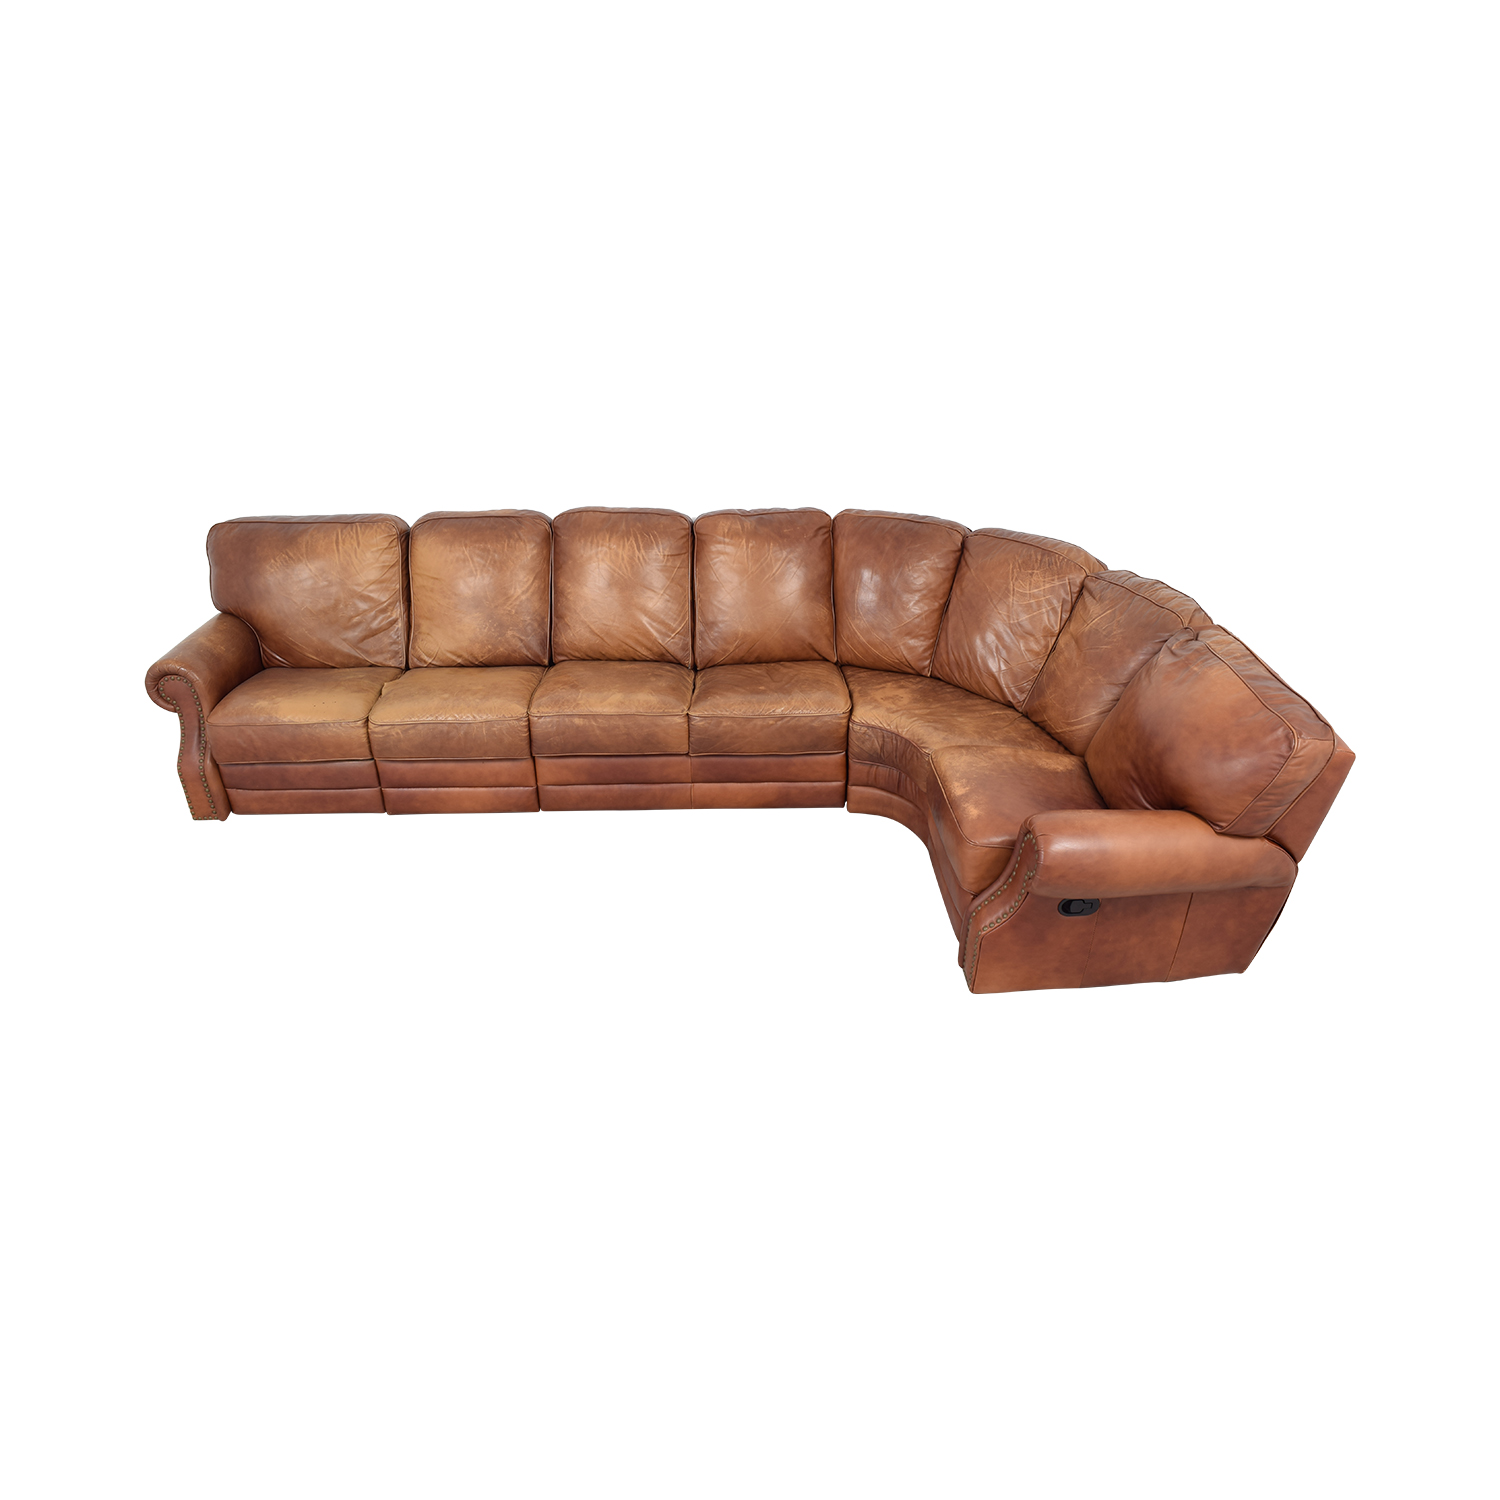 Astounding 70 Off Decoro Decoro Leather Sectional Sofa Sofas Unemploymentrelief Wooden Chair Designs For Living Room Unemploymentrelieforg